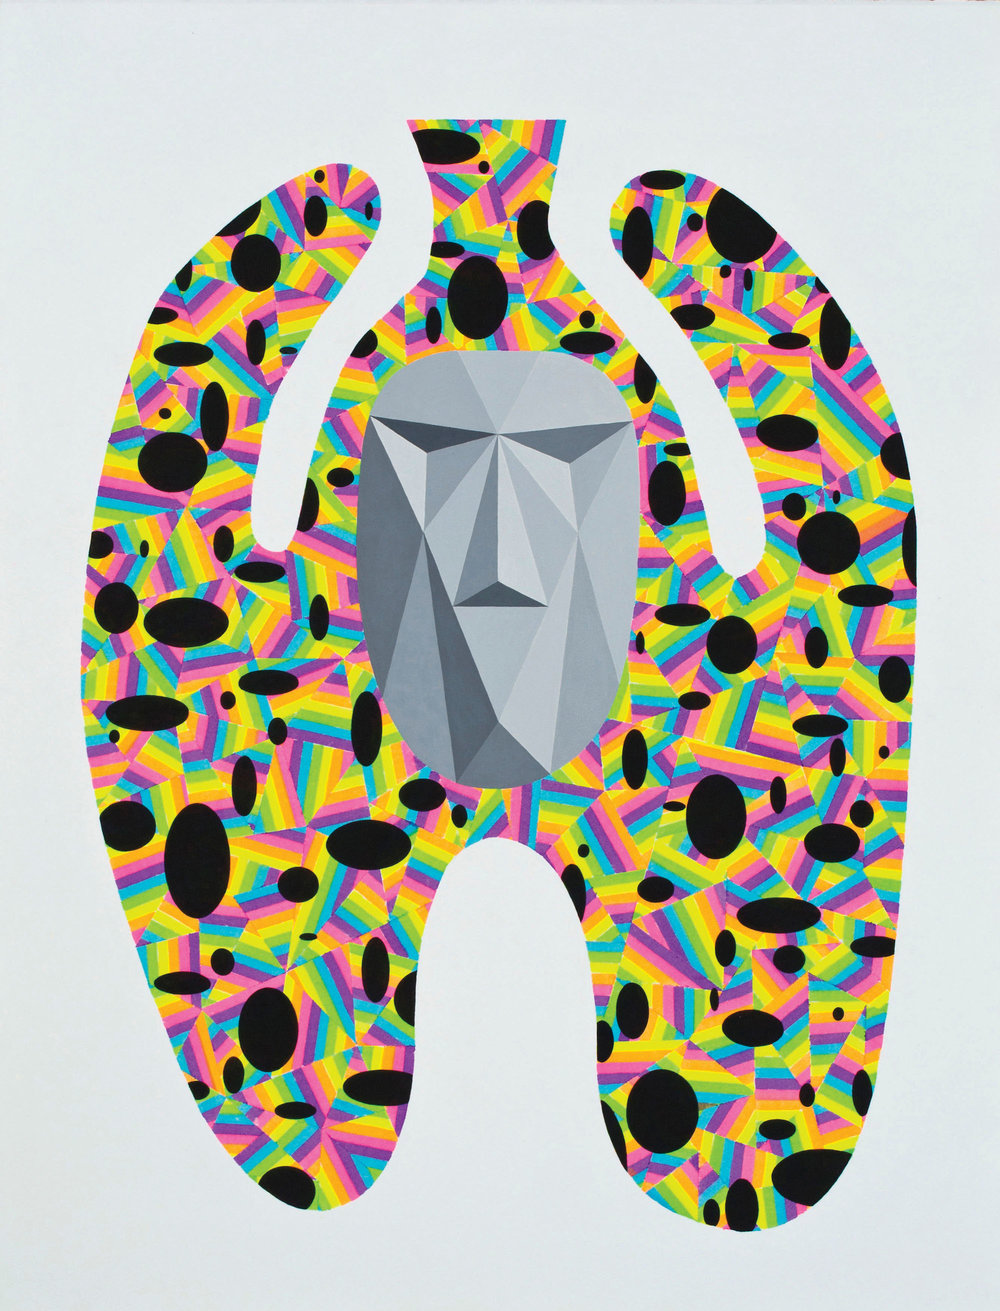 Fahd Burki  Urn 2012 Acrylics and marker on paper 56.5 x 43.3 cm